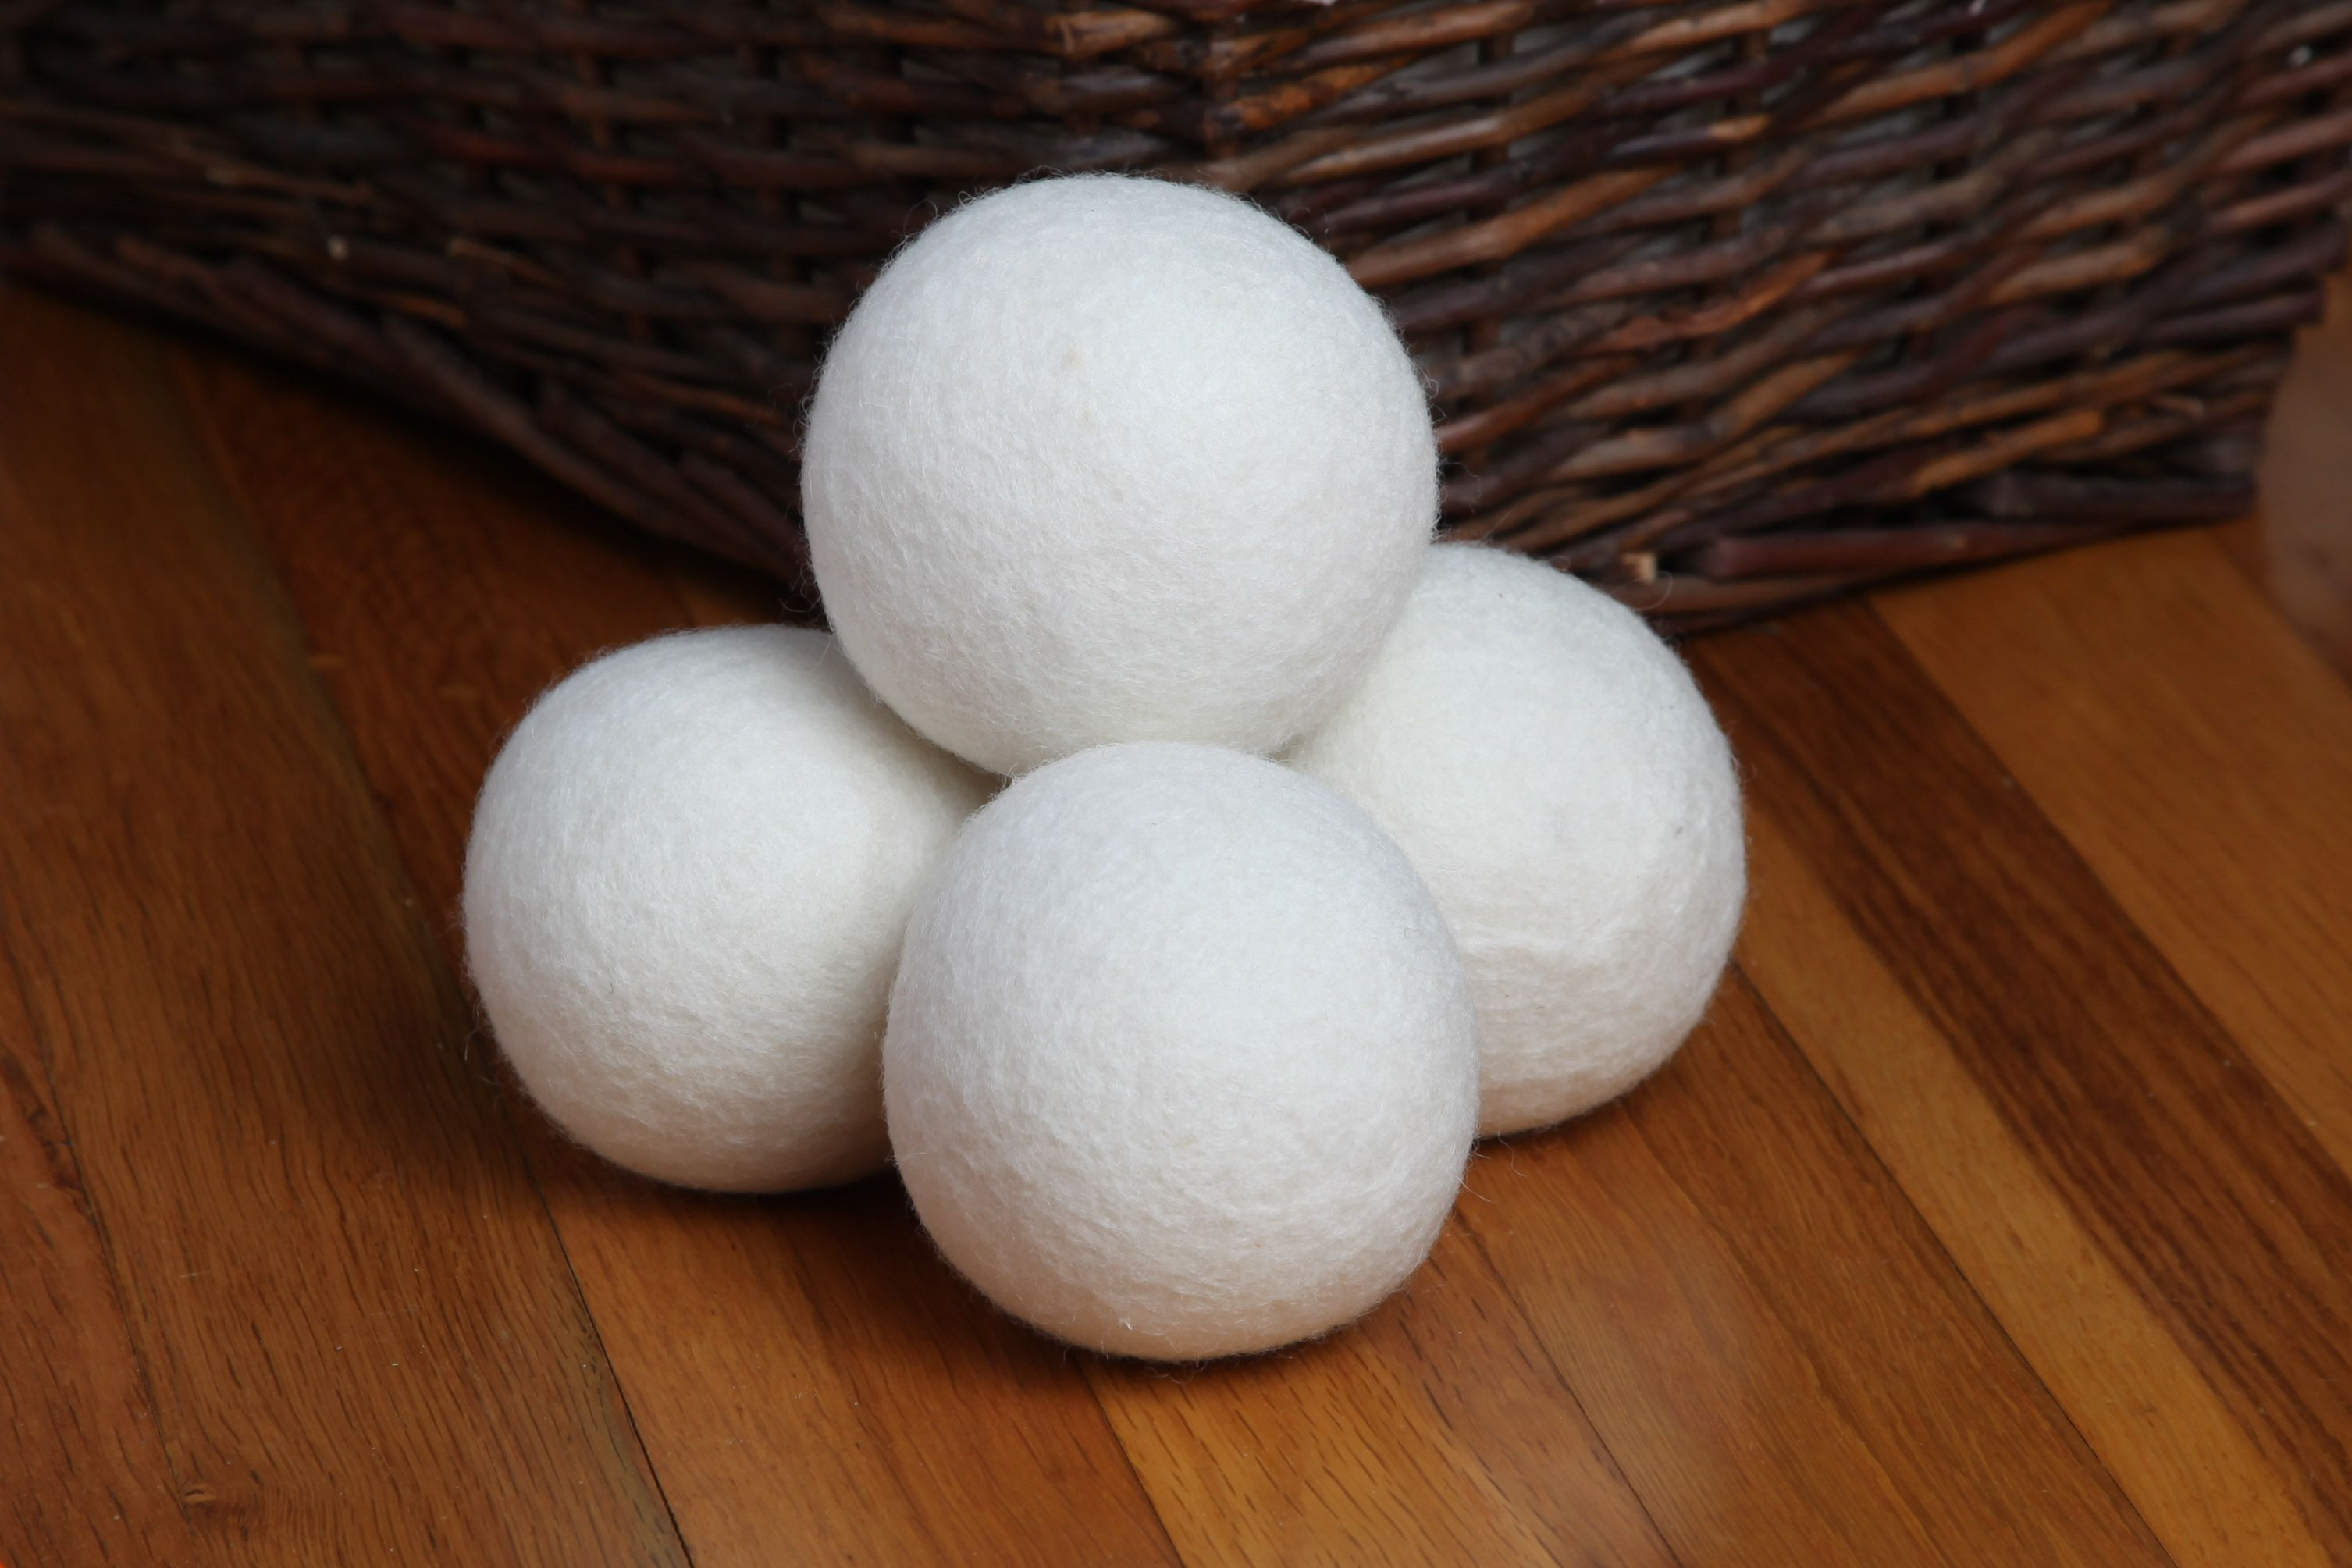 Sheep dryer ball on wooden floor